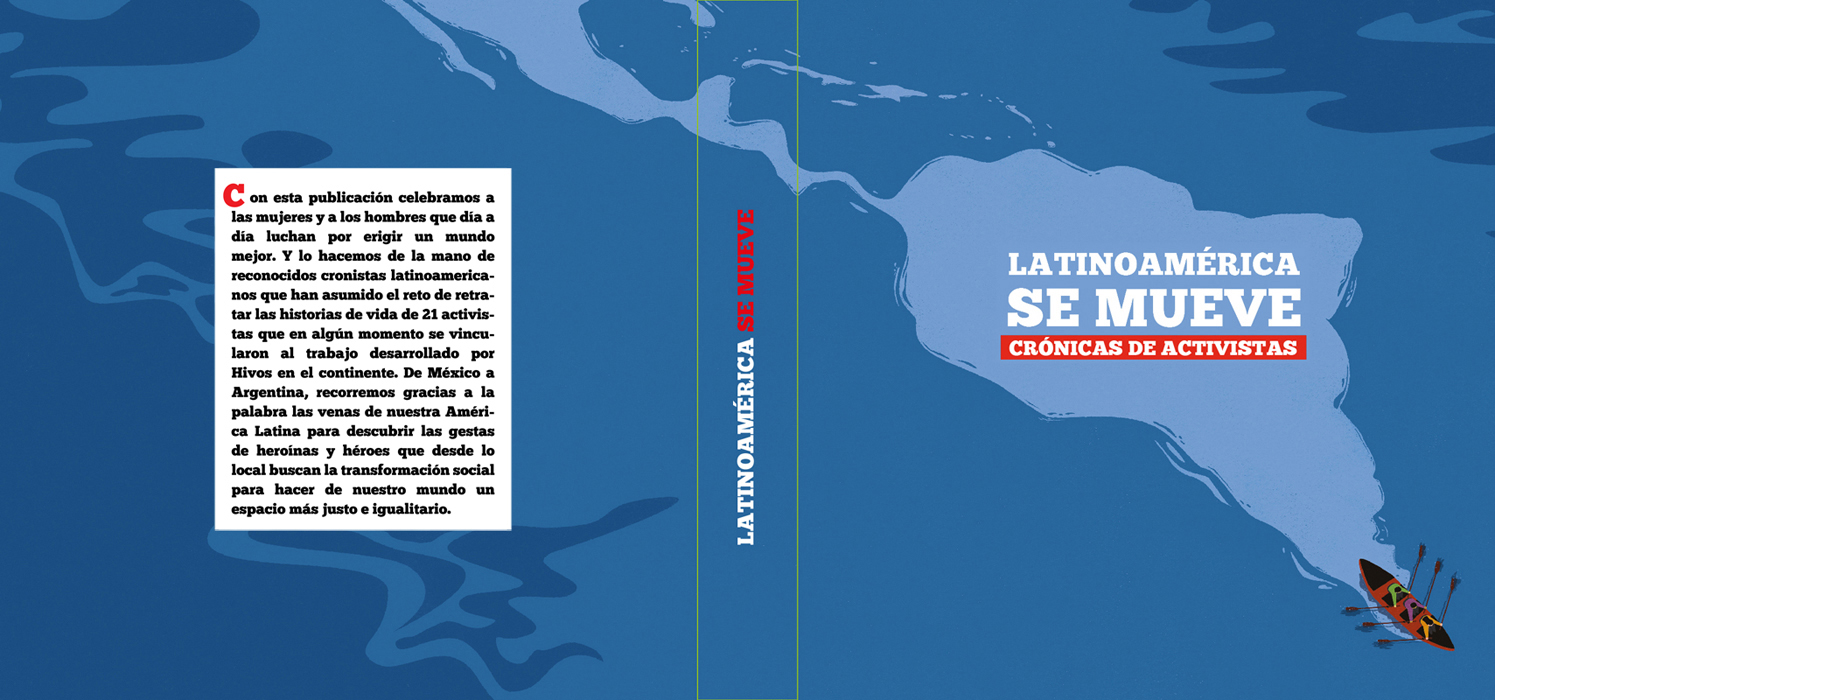 Latin America in Motion -  Hivos (NGO)